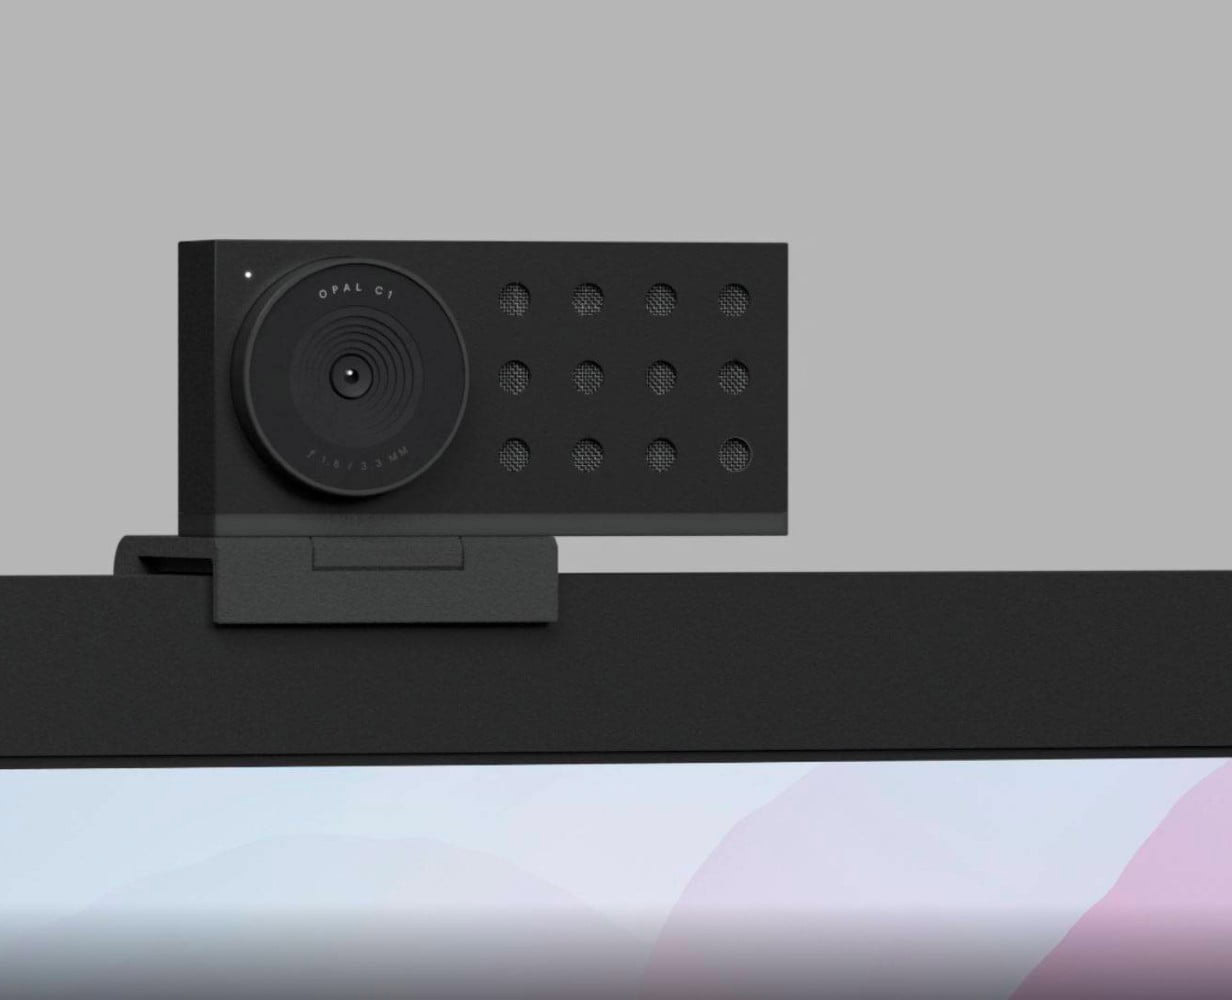 Upgrade Your Mac's Webcam Quality with the Opal C1 at werd.com